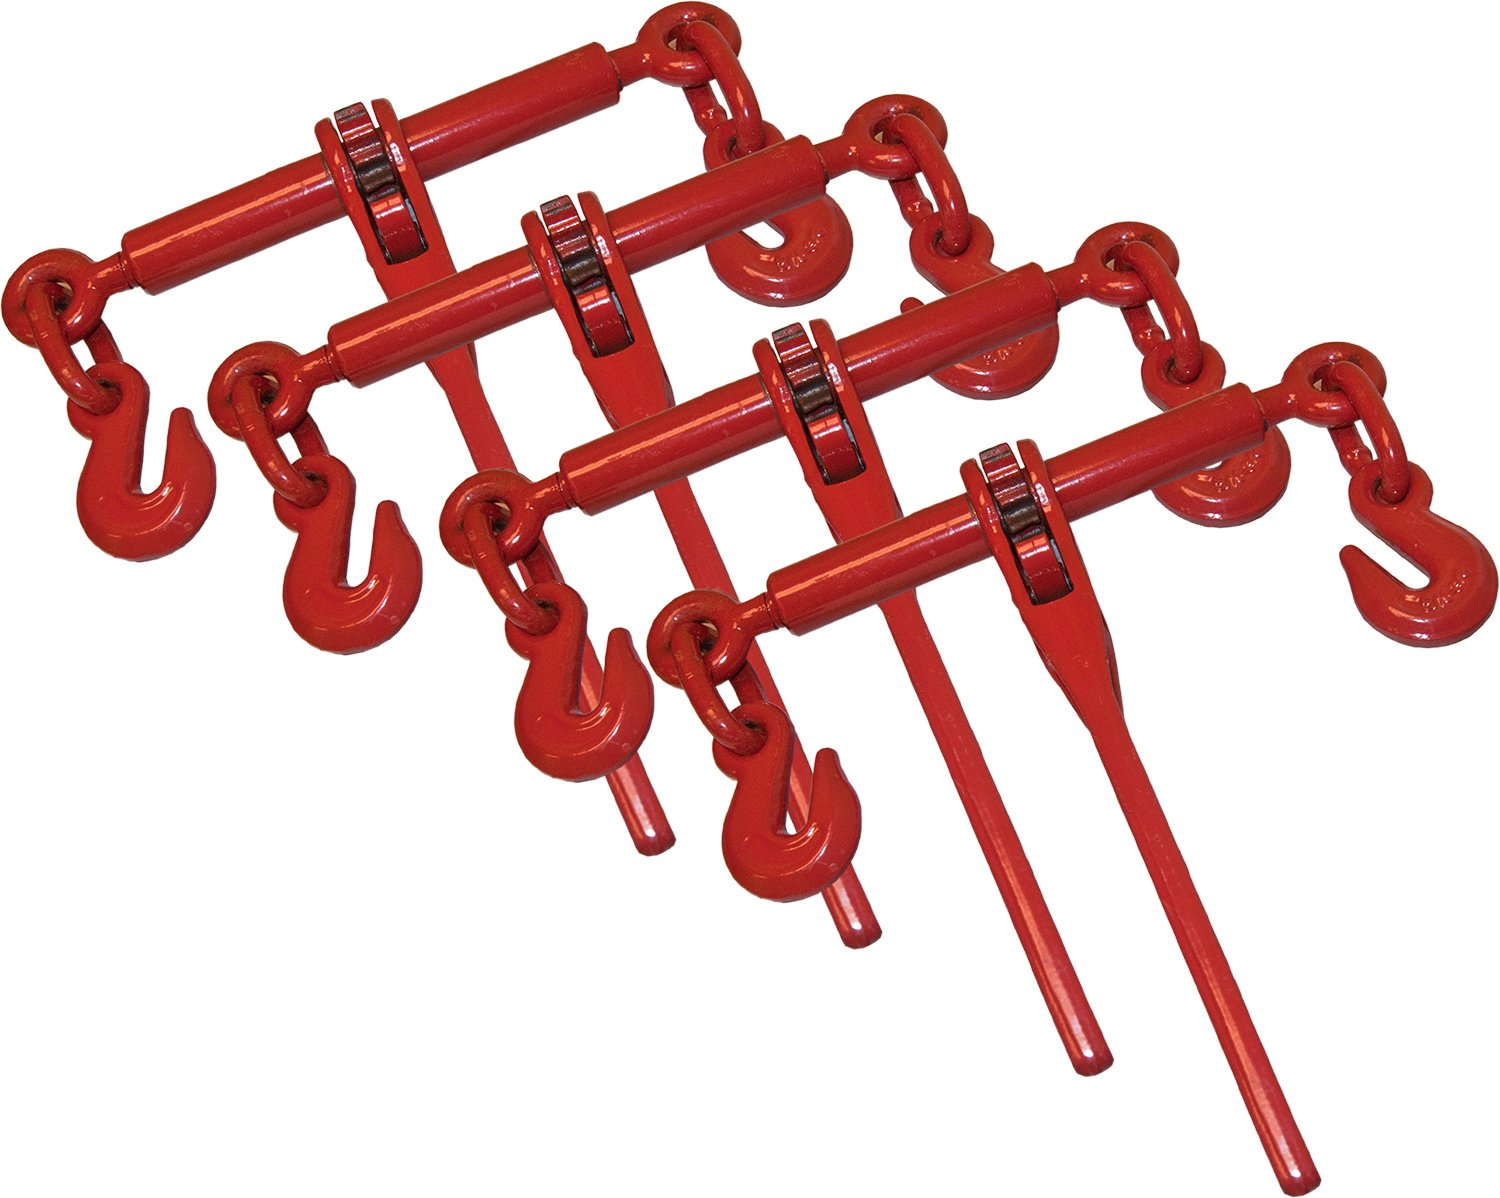 4 Piece Ratchet Load Binder 5/16''- 3/8'' Chain Binders Tie Down